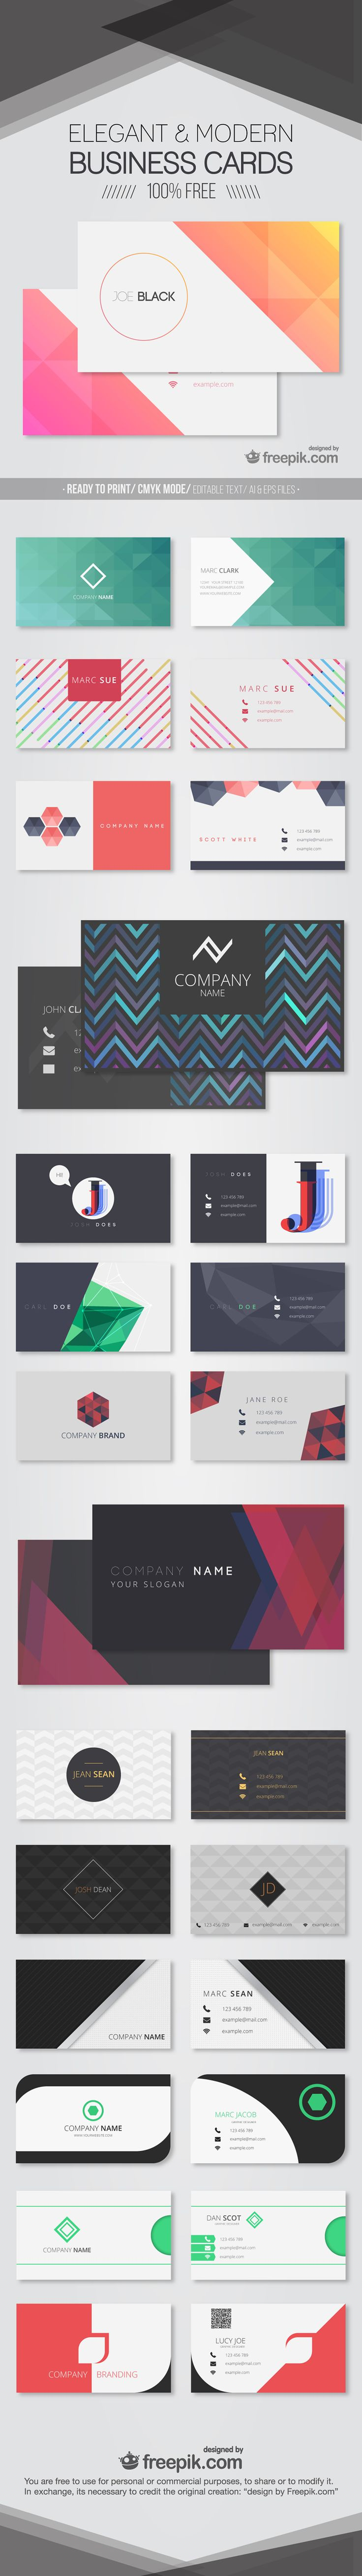 Free Modern Business Card Templates  Business Cards Business